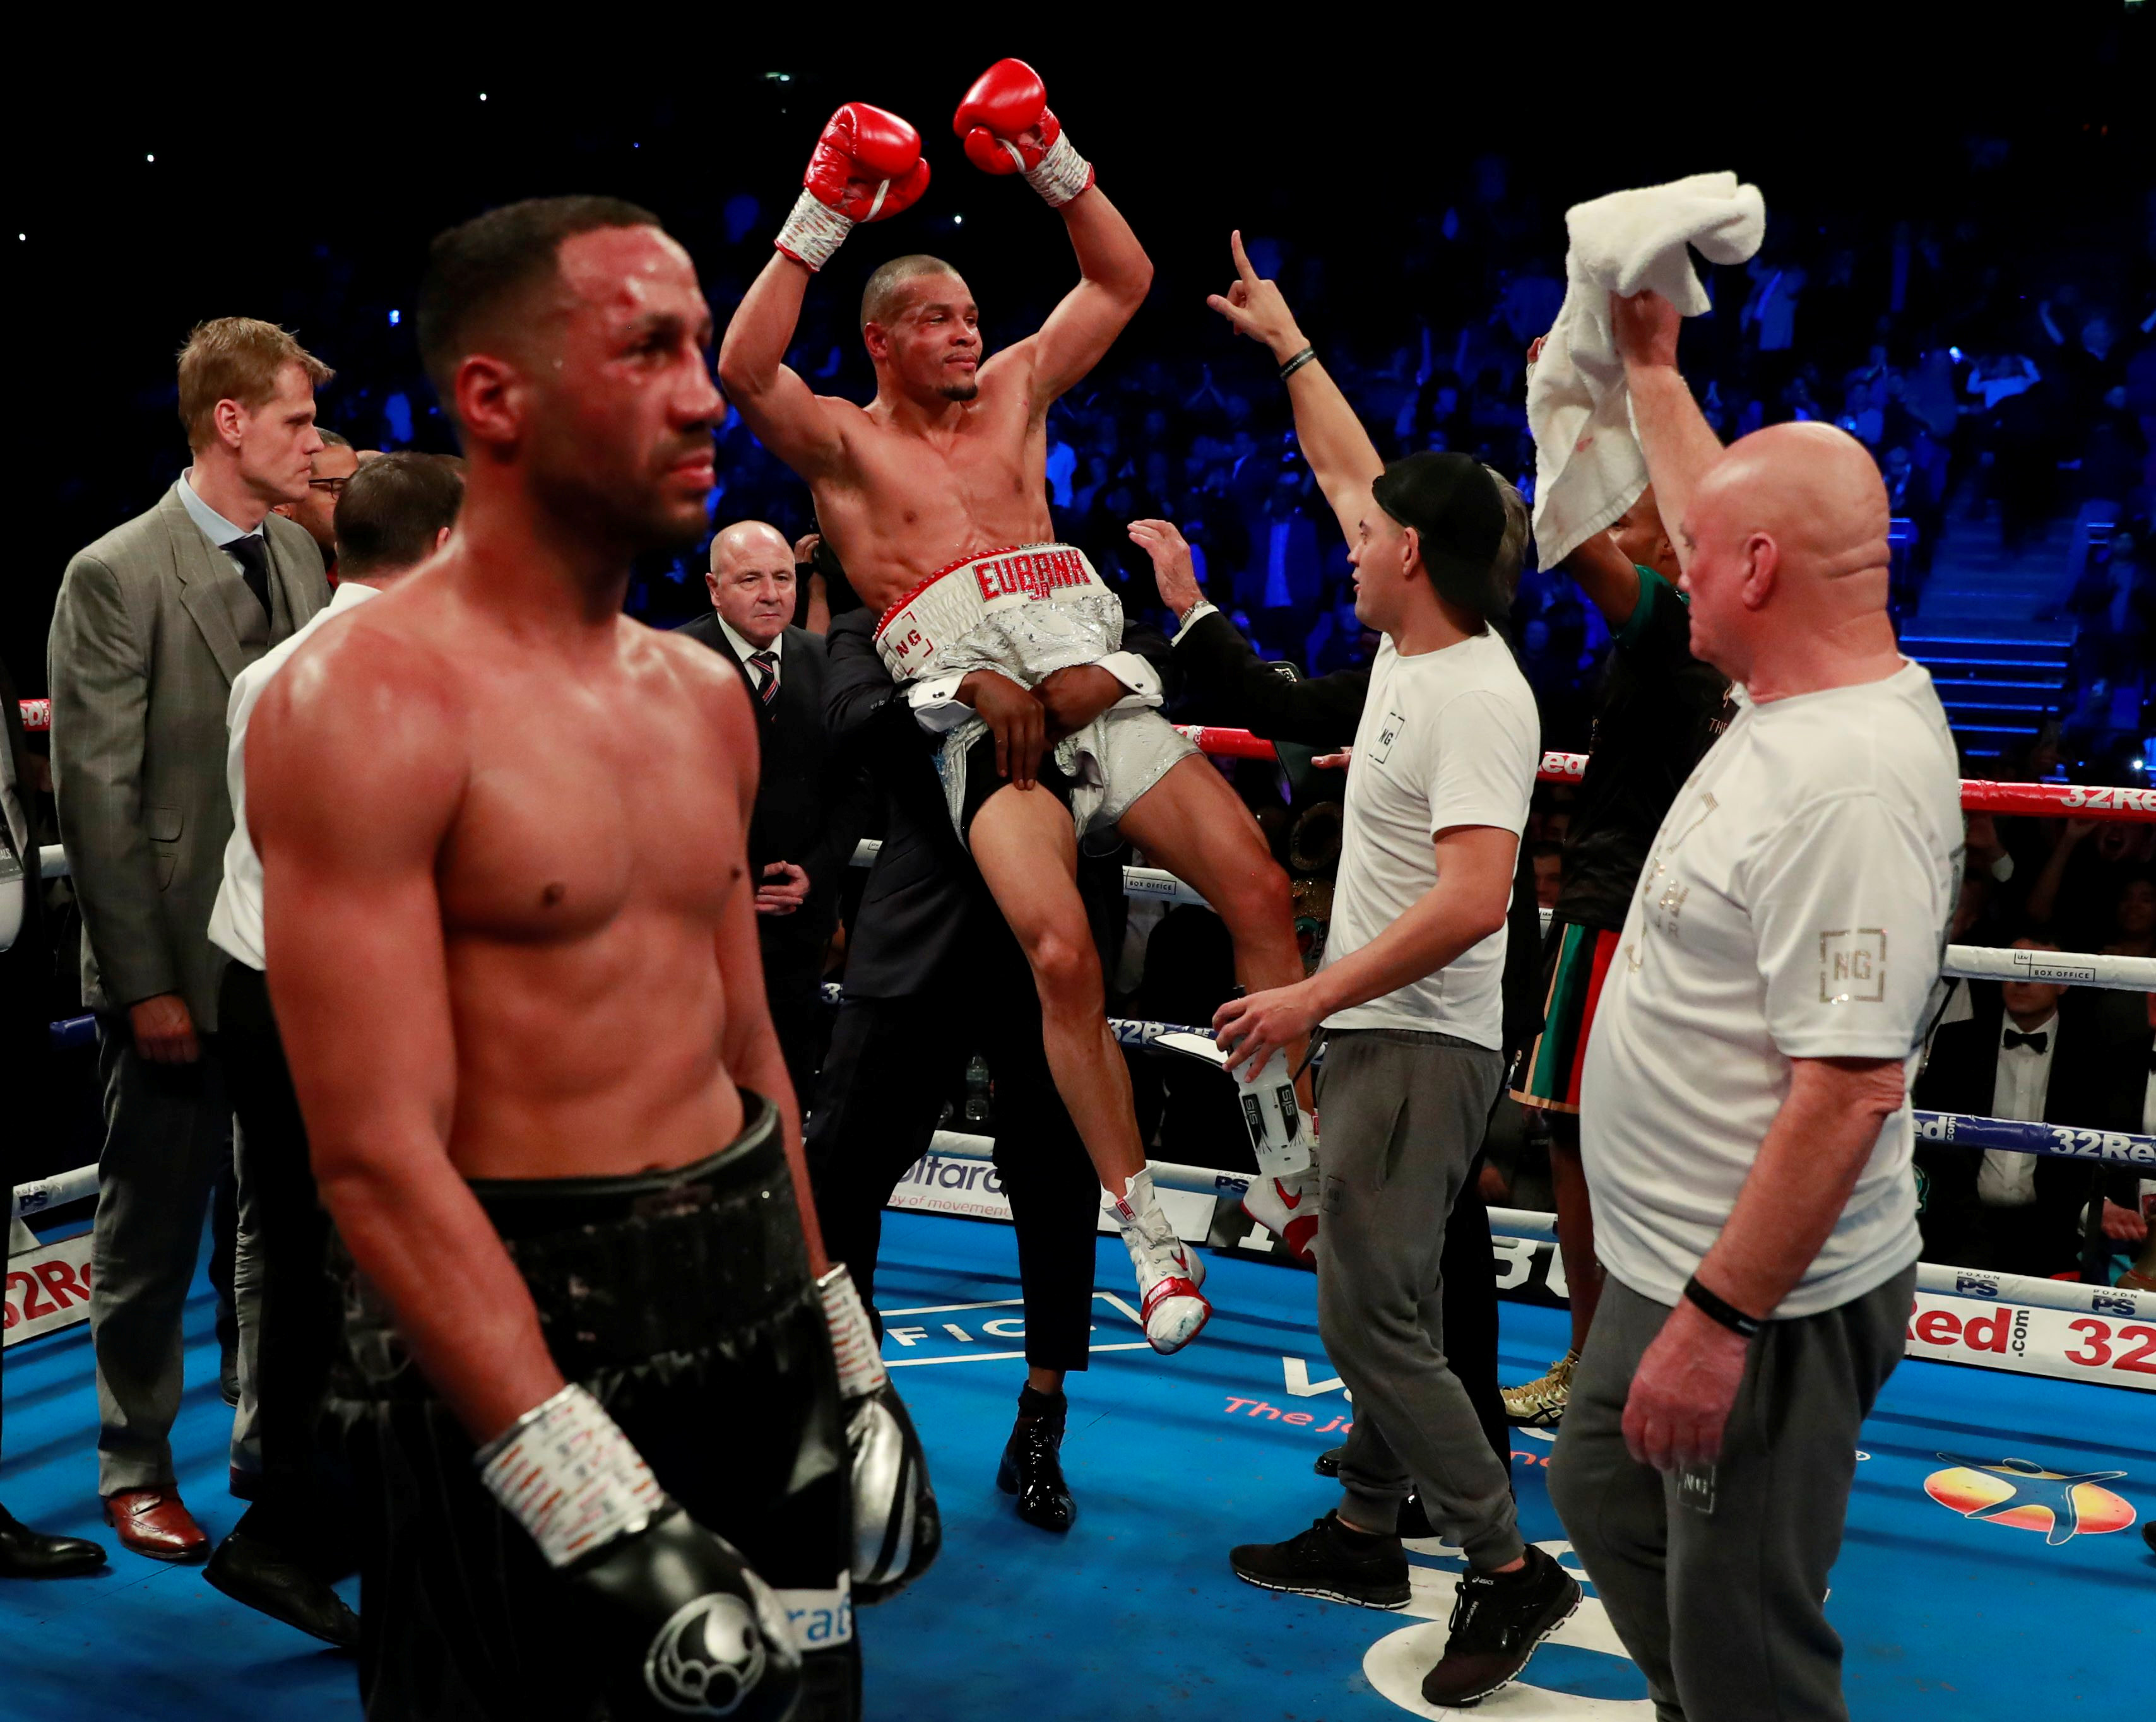 Eubank has tipped pal Joshua to bounce back from defeat, like he has in the past